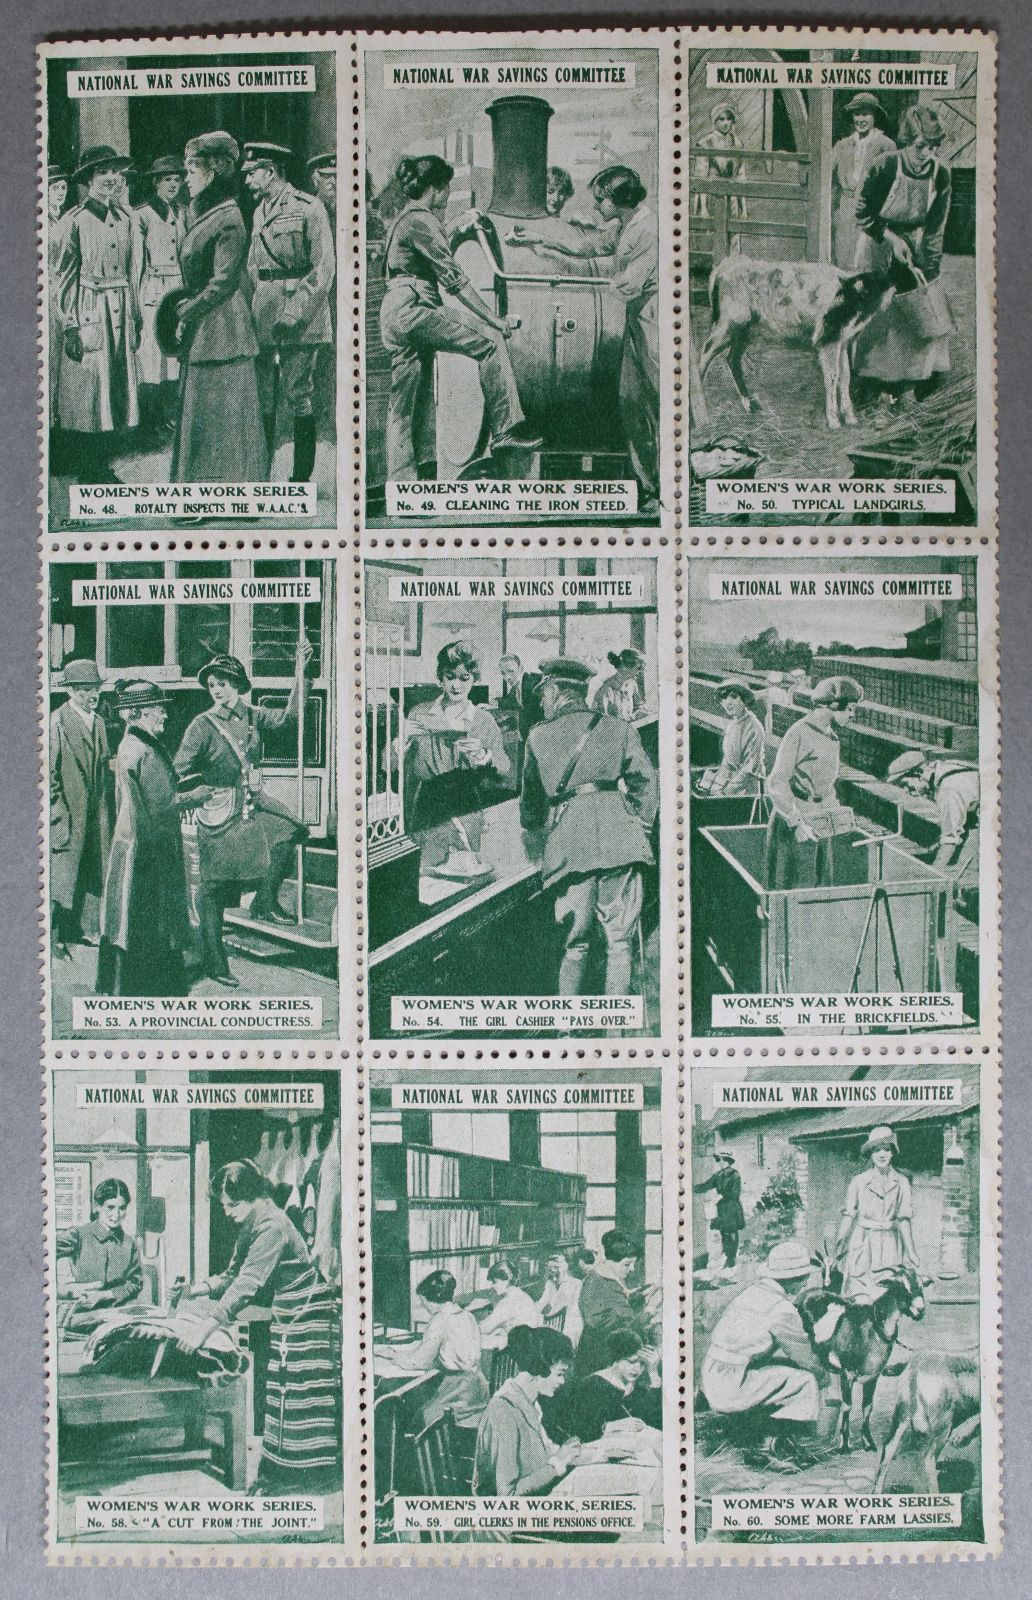 A sheet of green stamps showing images of women doing war work. This includes butchery, milking goats, working as clerks and working in a factory.